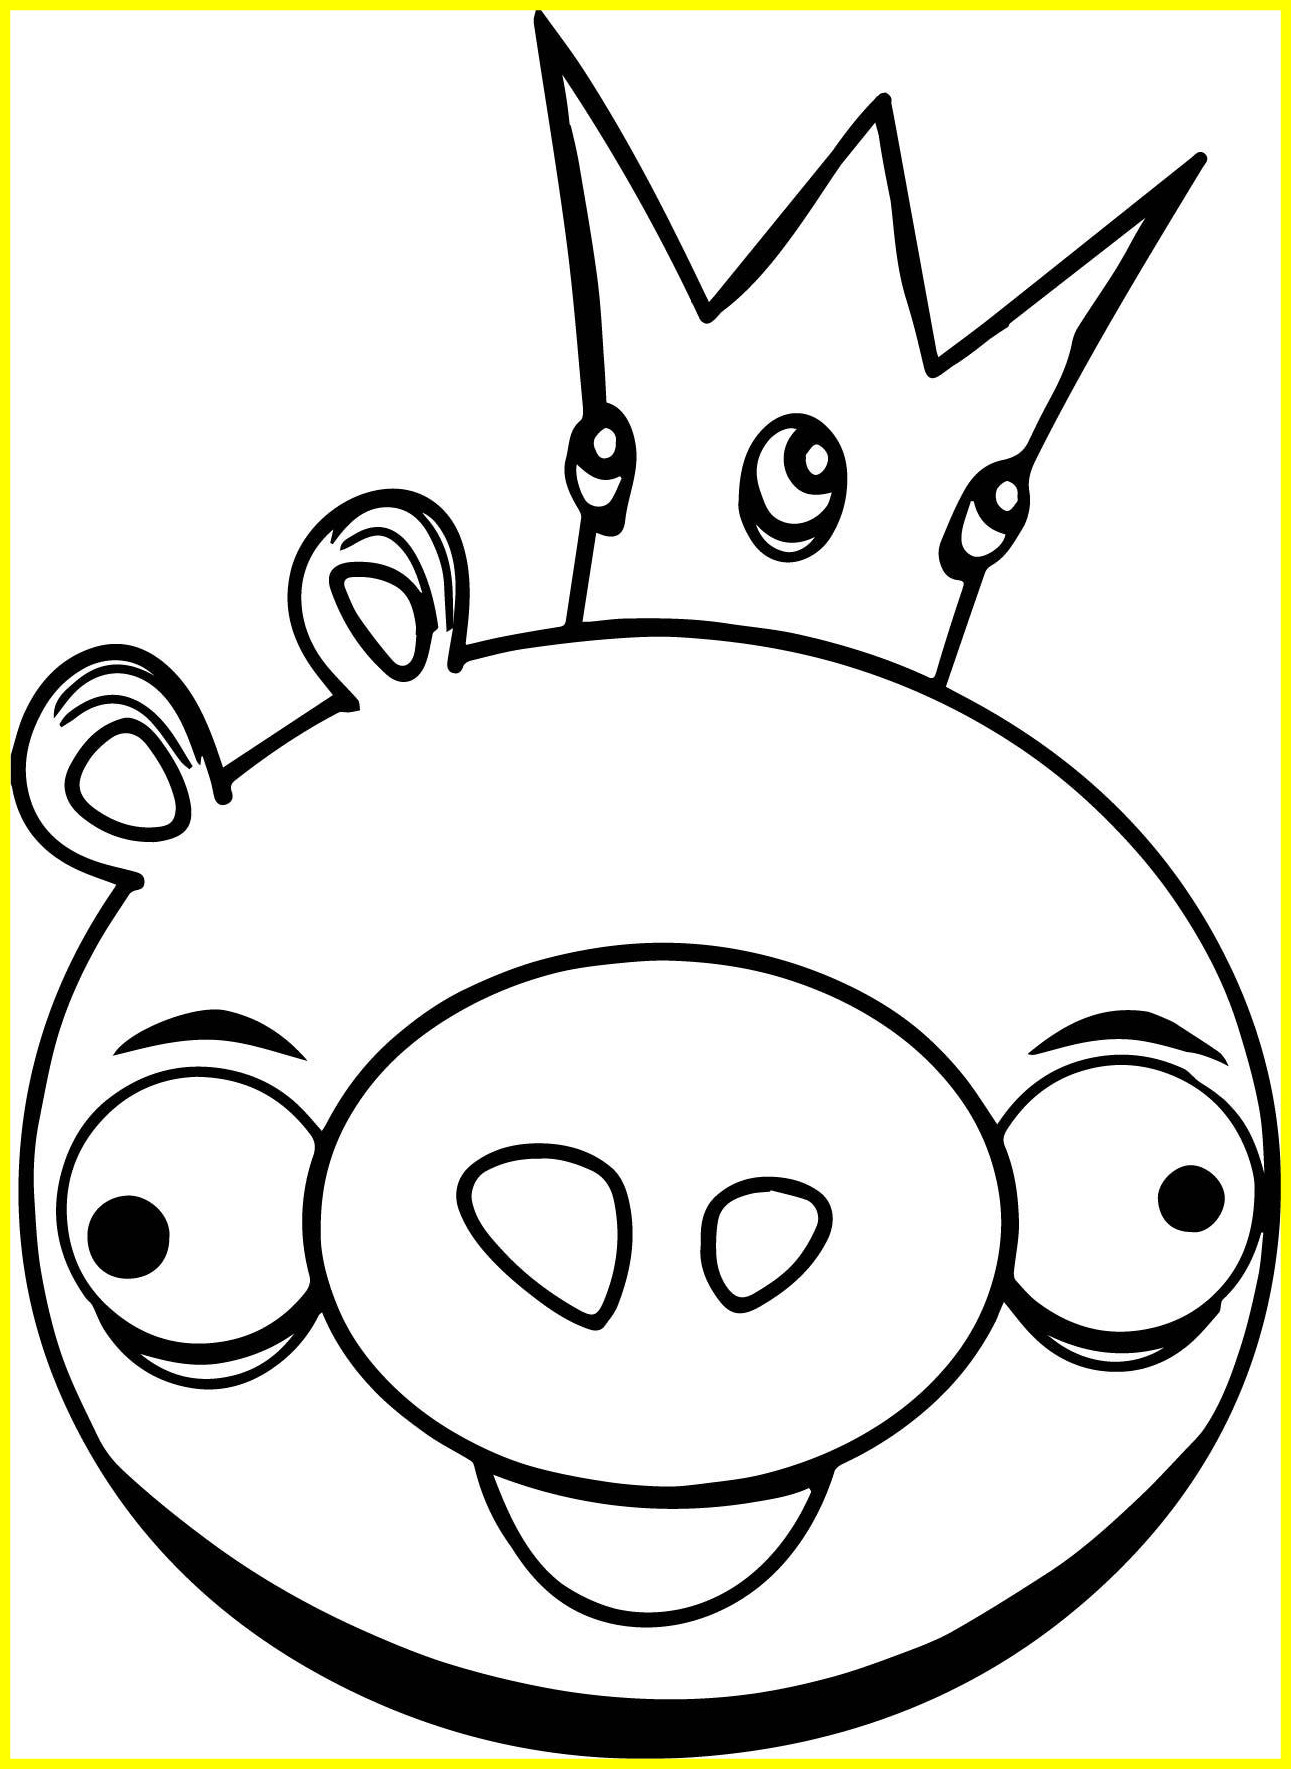 Angry Bird Pigs Coloring Pages Printable | Free Coloring Sheets